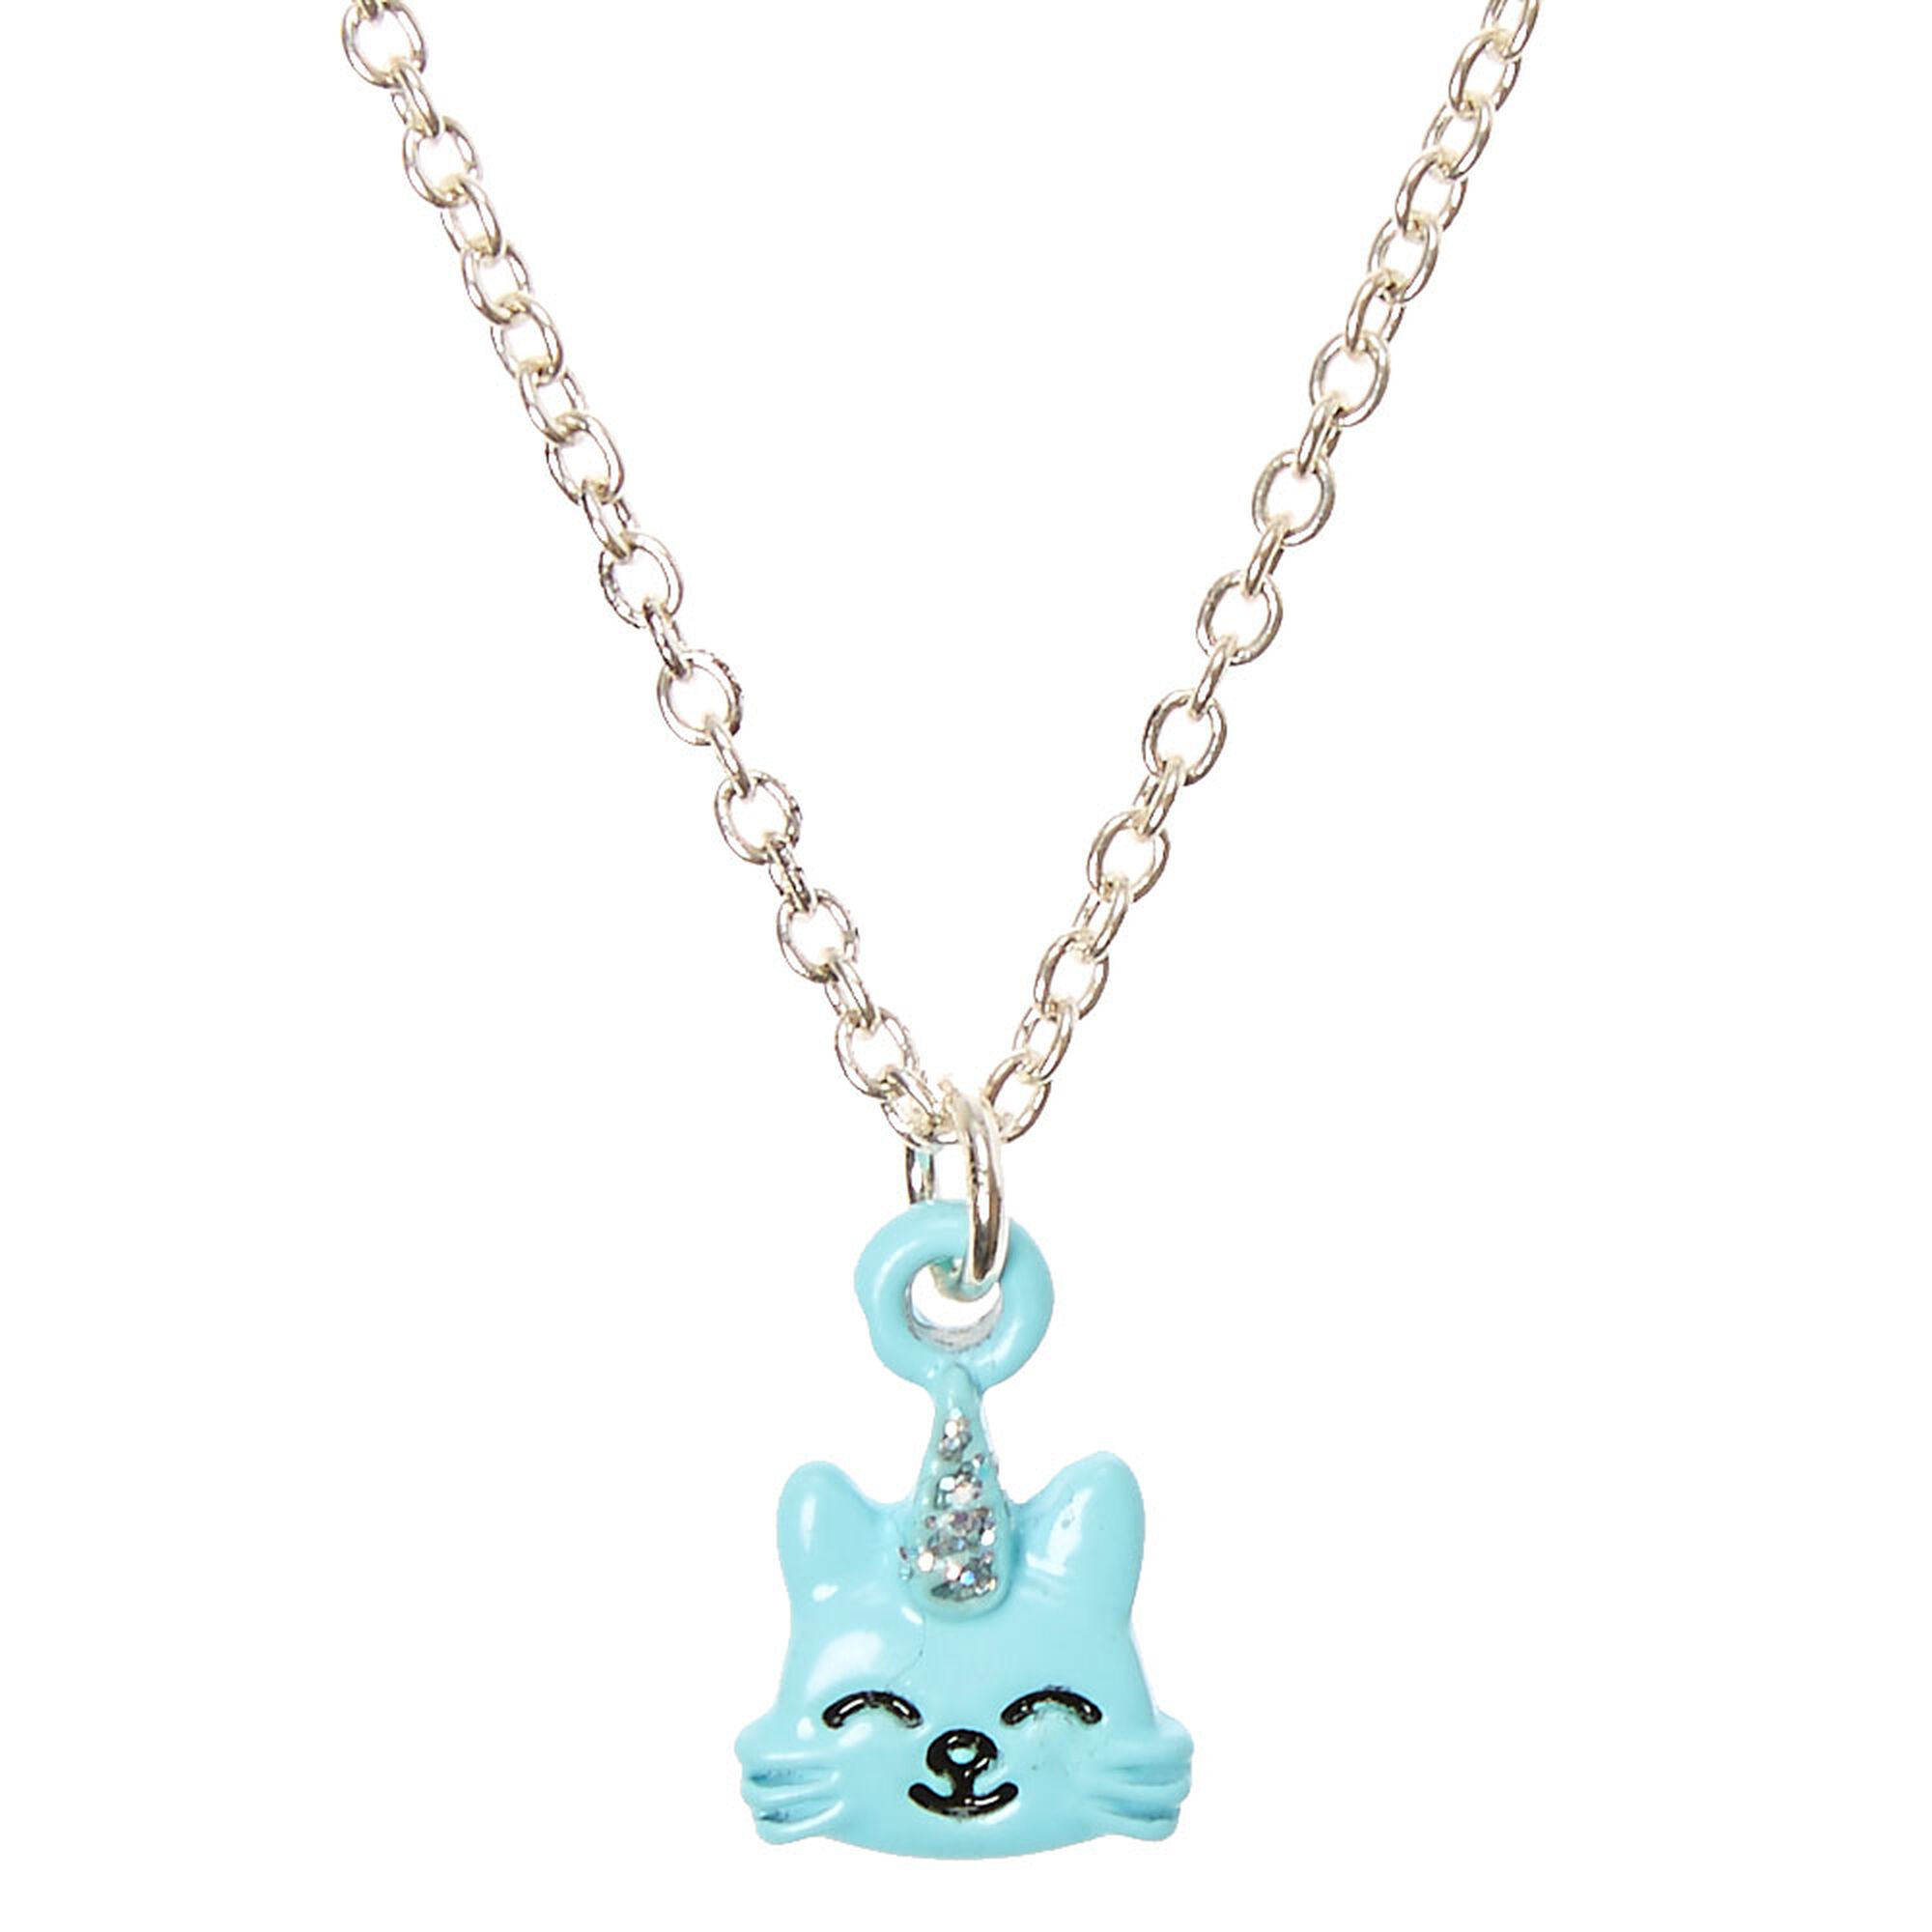 jewellery rescue ca mint collections original cat necklace lovers crazy kitty products jewelry beads lady